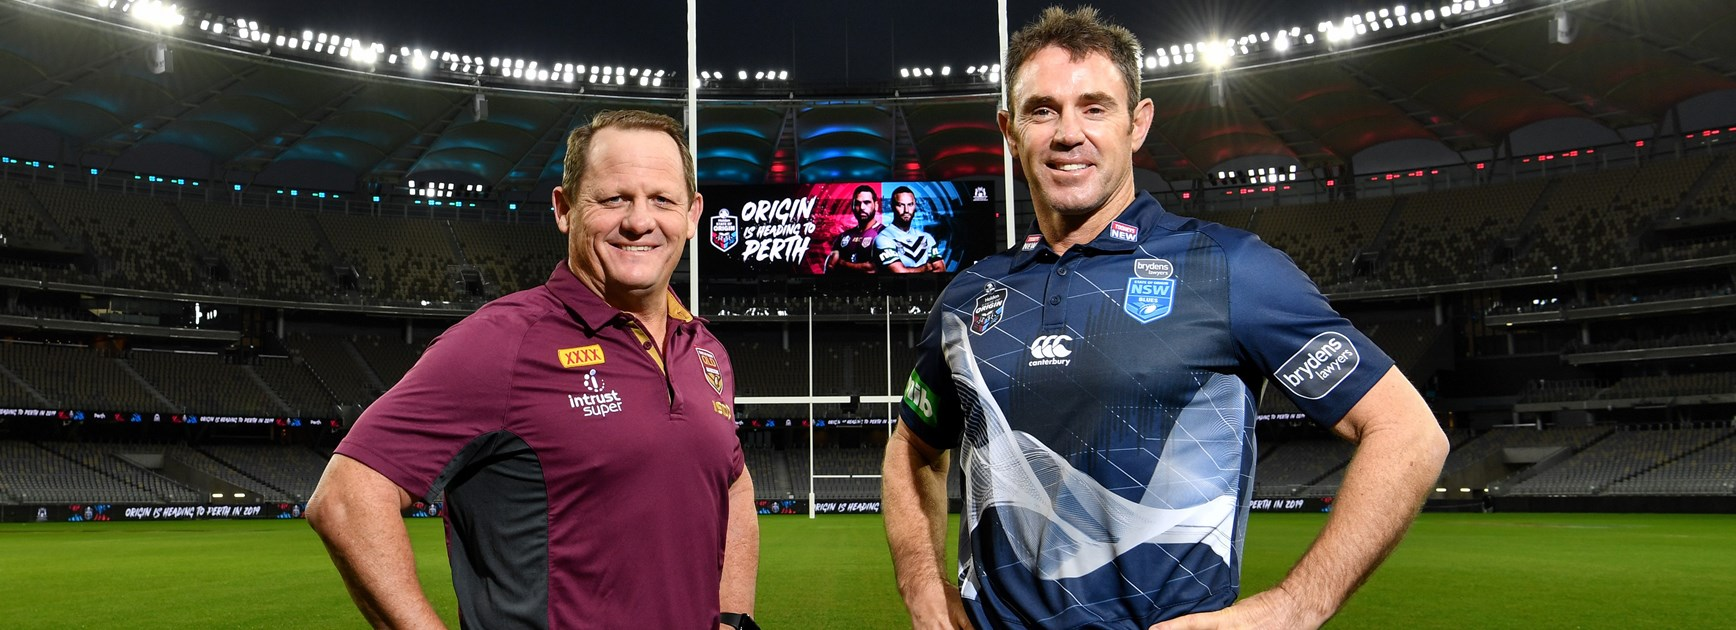 Queensland coach Kevin Walters and NSW coach Brad Fittler in Perth.